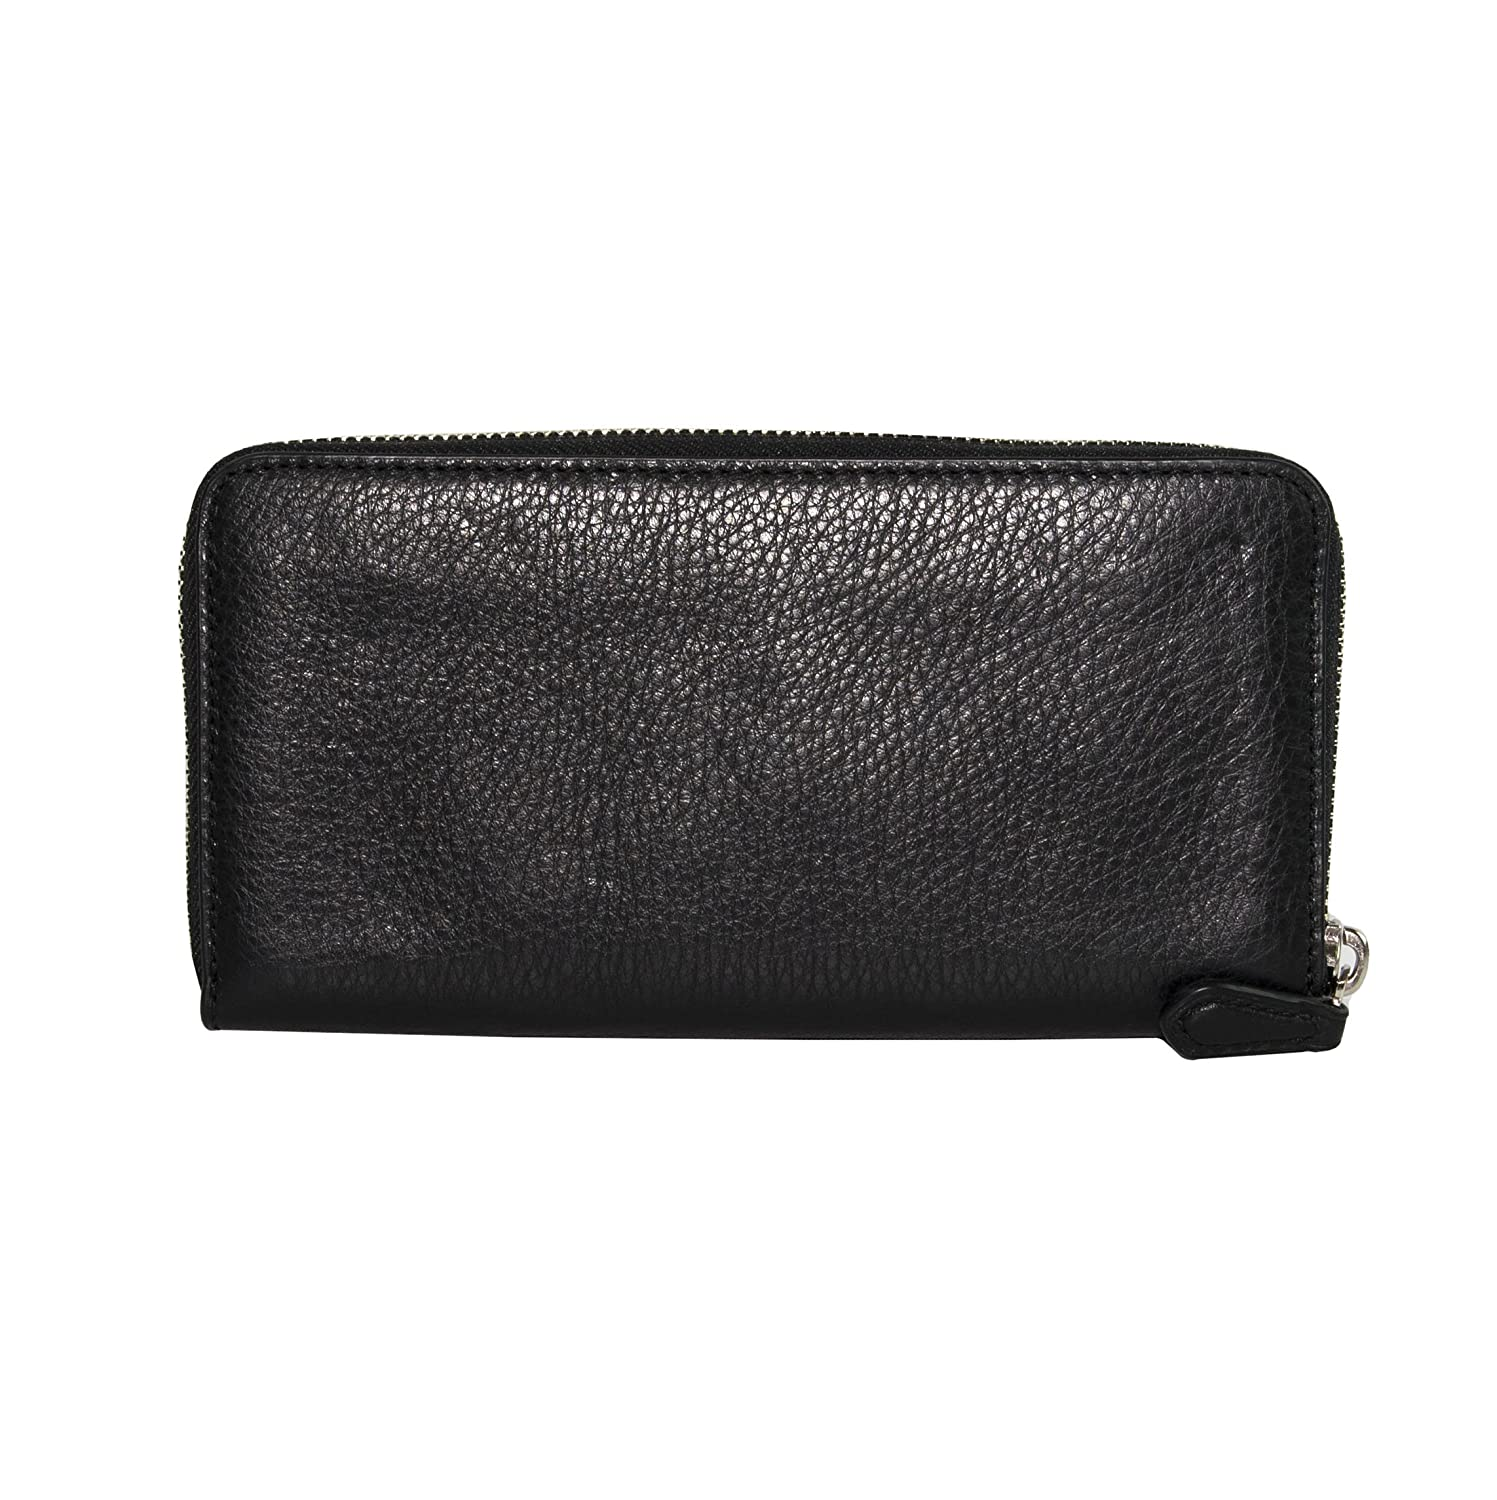 bd35cc091ef1 Coach Stardust Star Studded Black Pebbled Leather Zip Around Continental  Wallet 22700  Amazon.co.uk  Clothing